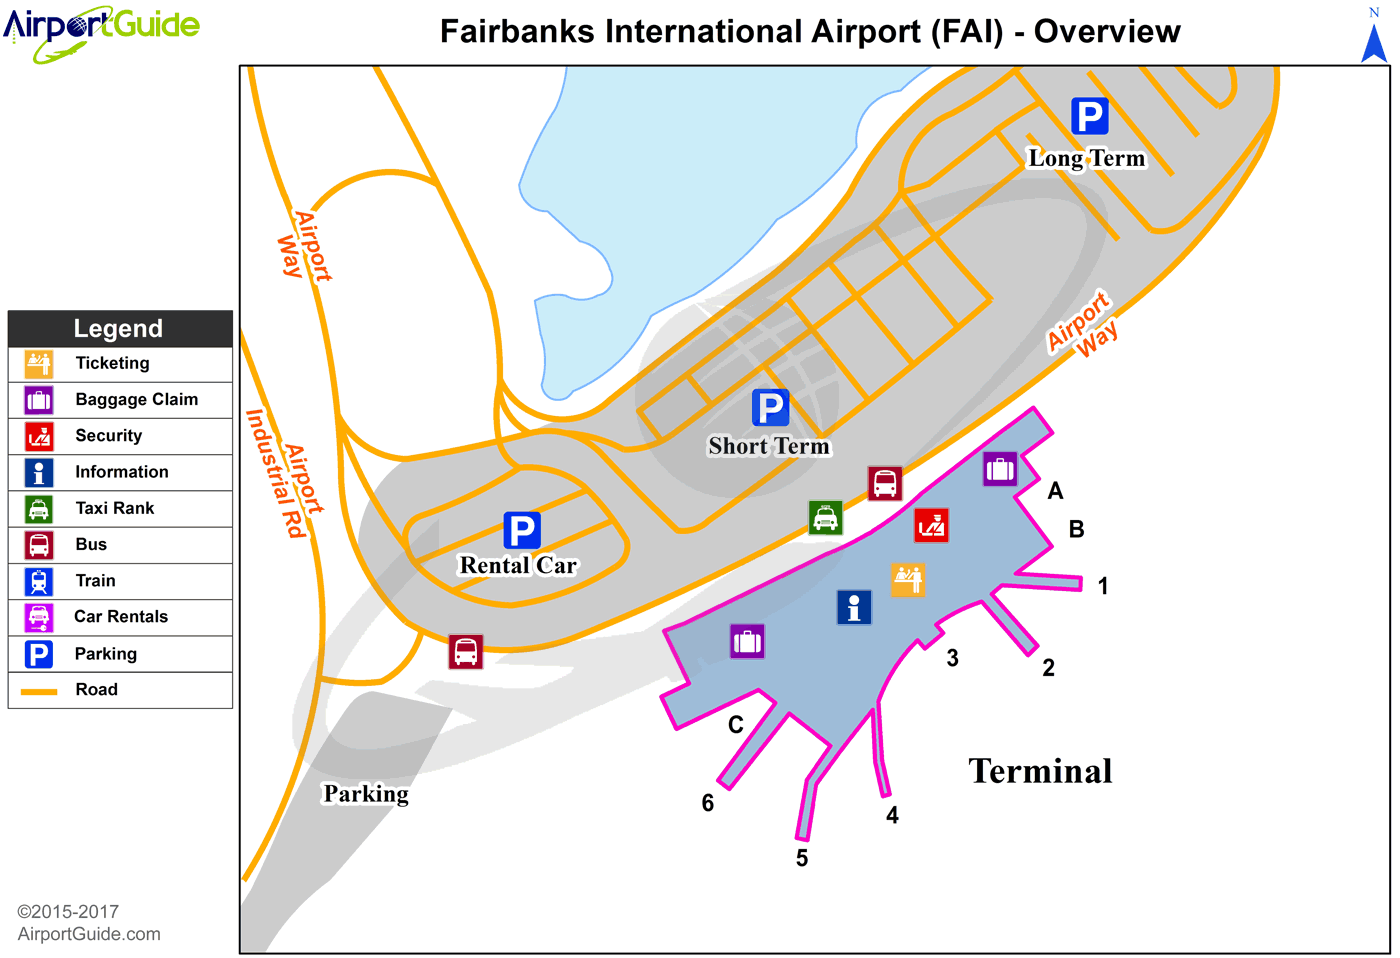 Fairbanks - Fairbanks International (FAI) Airport Terminal Map - Overview